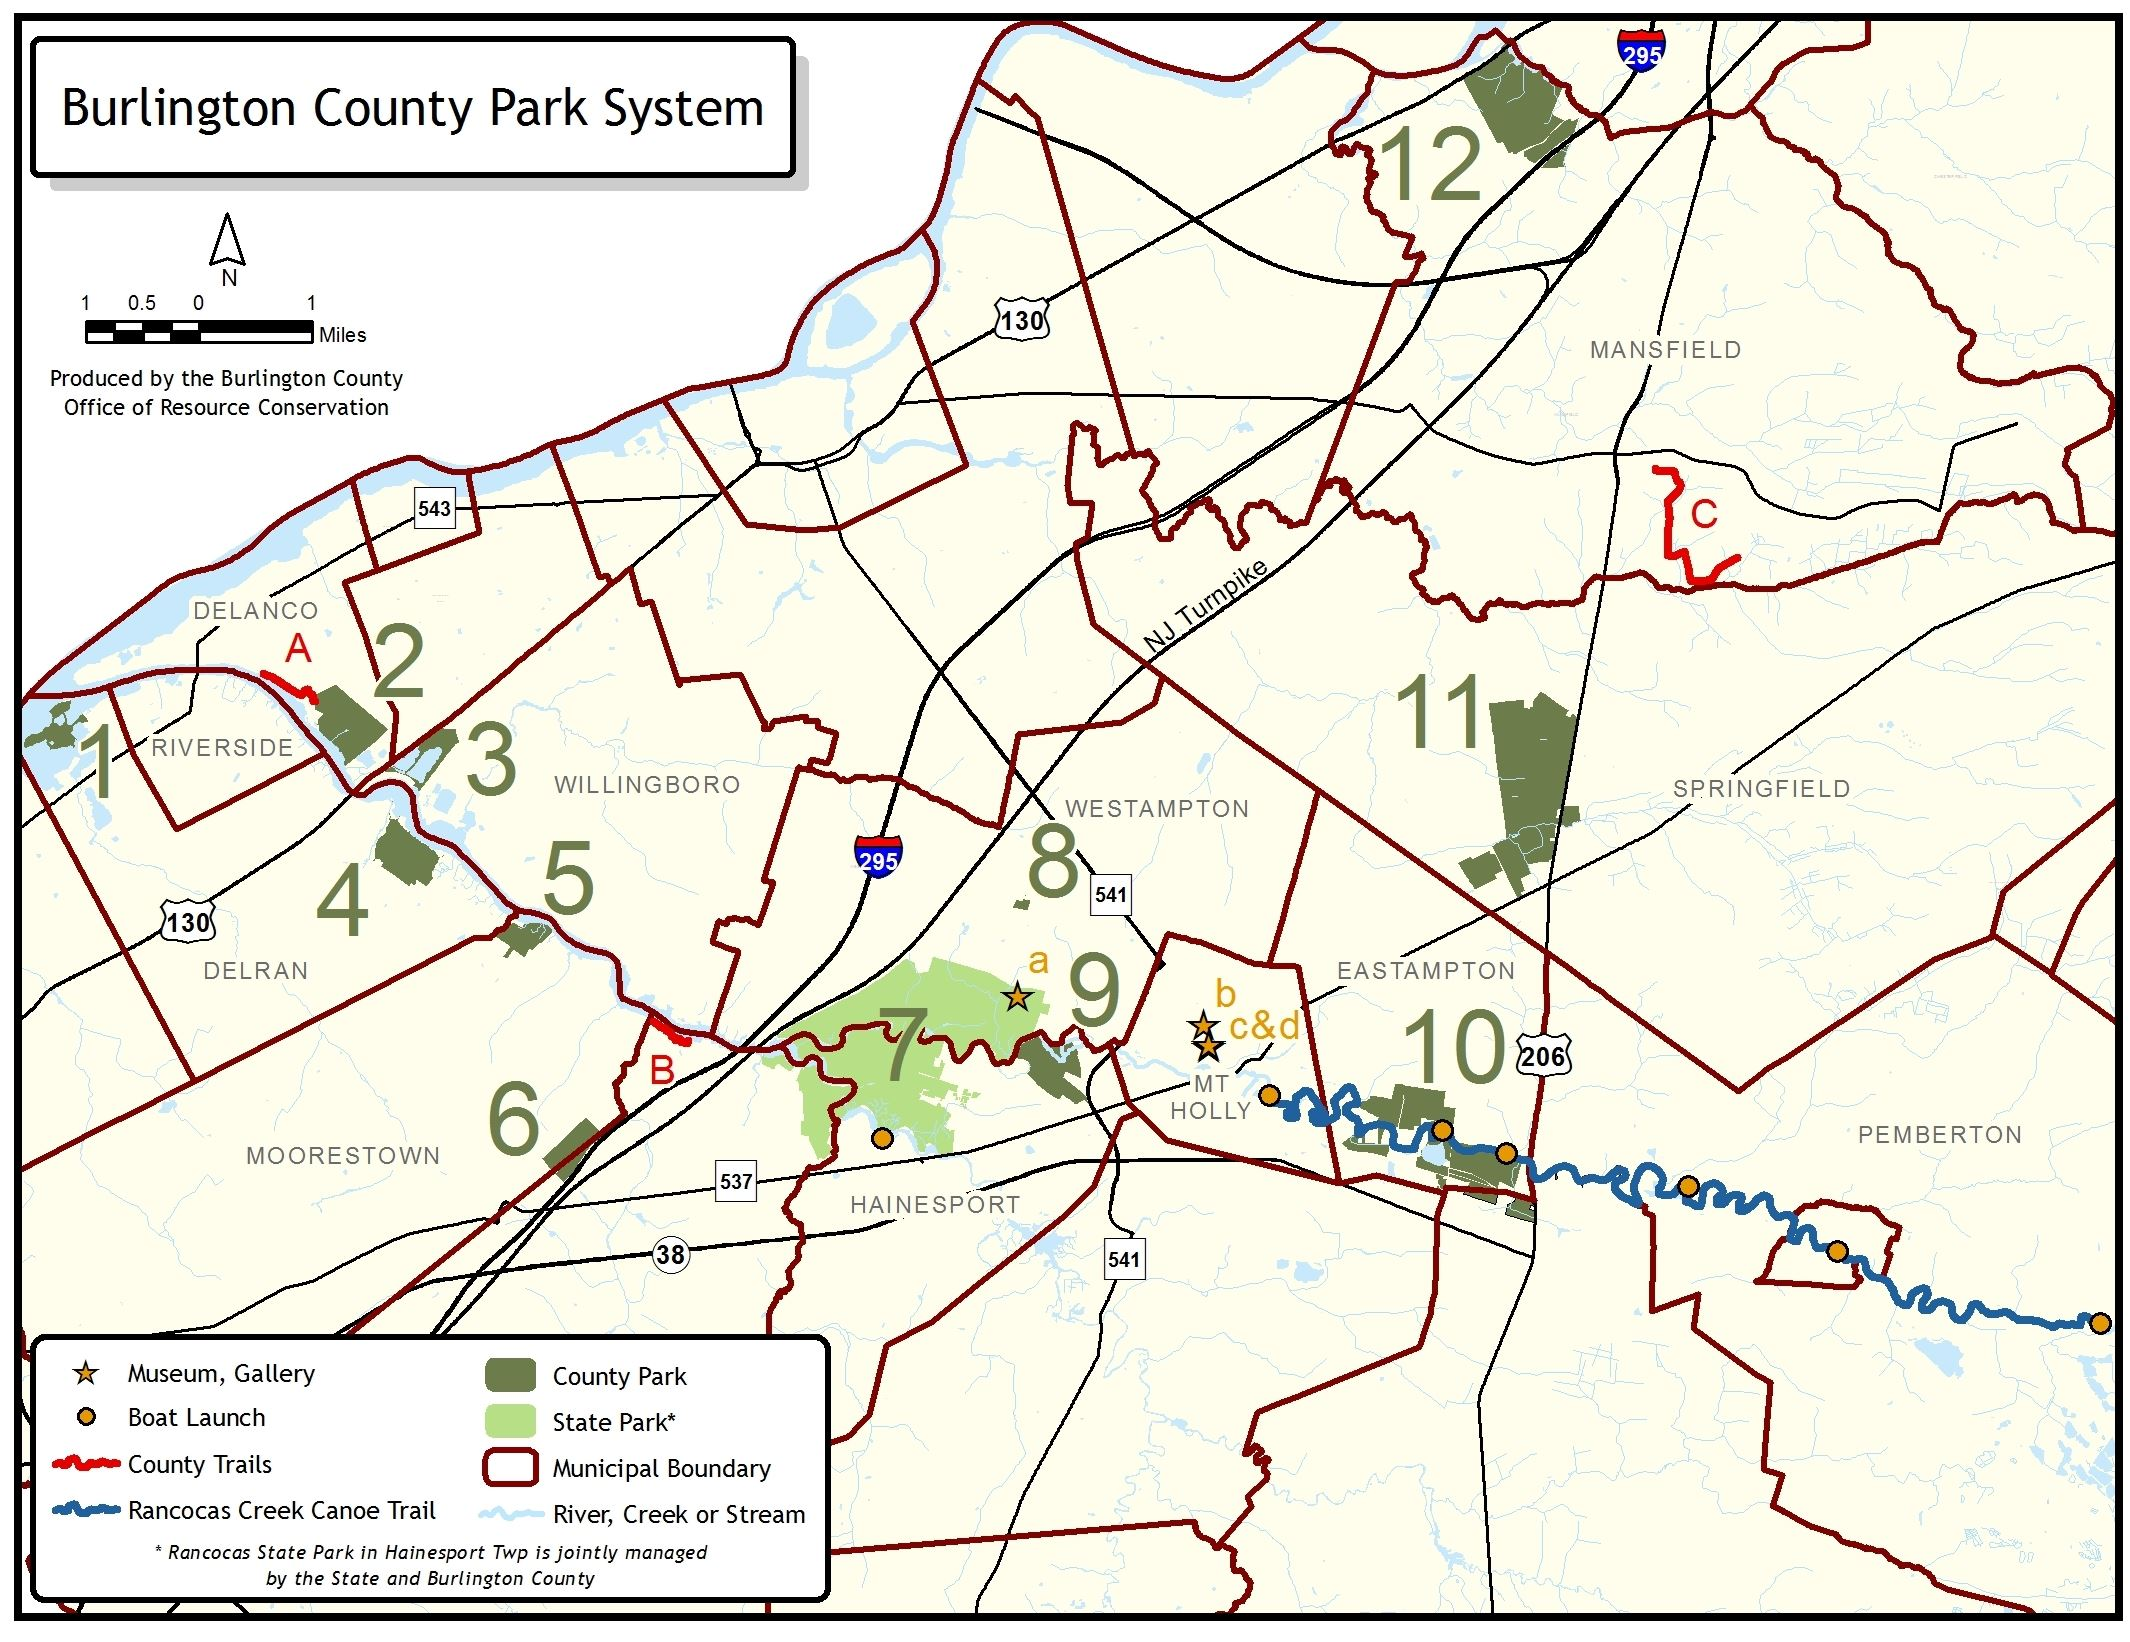 County Park System Map 2017